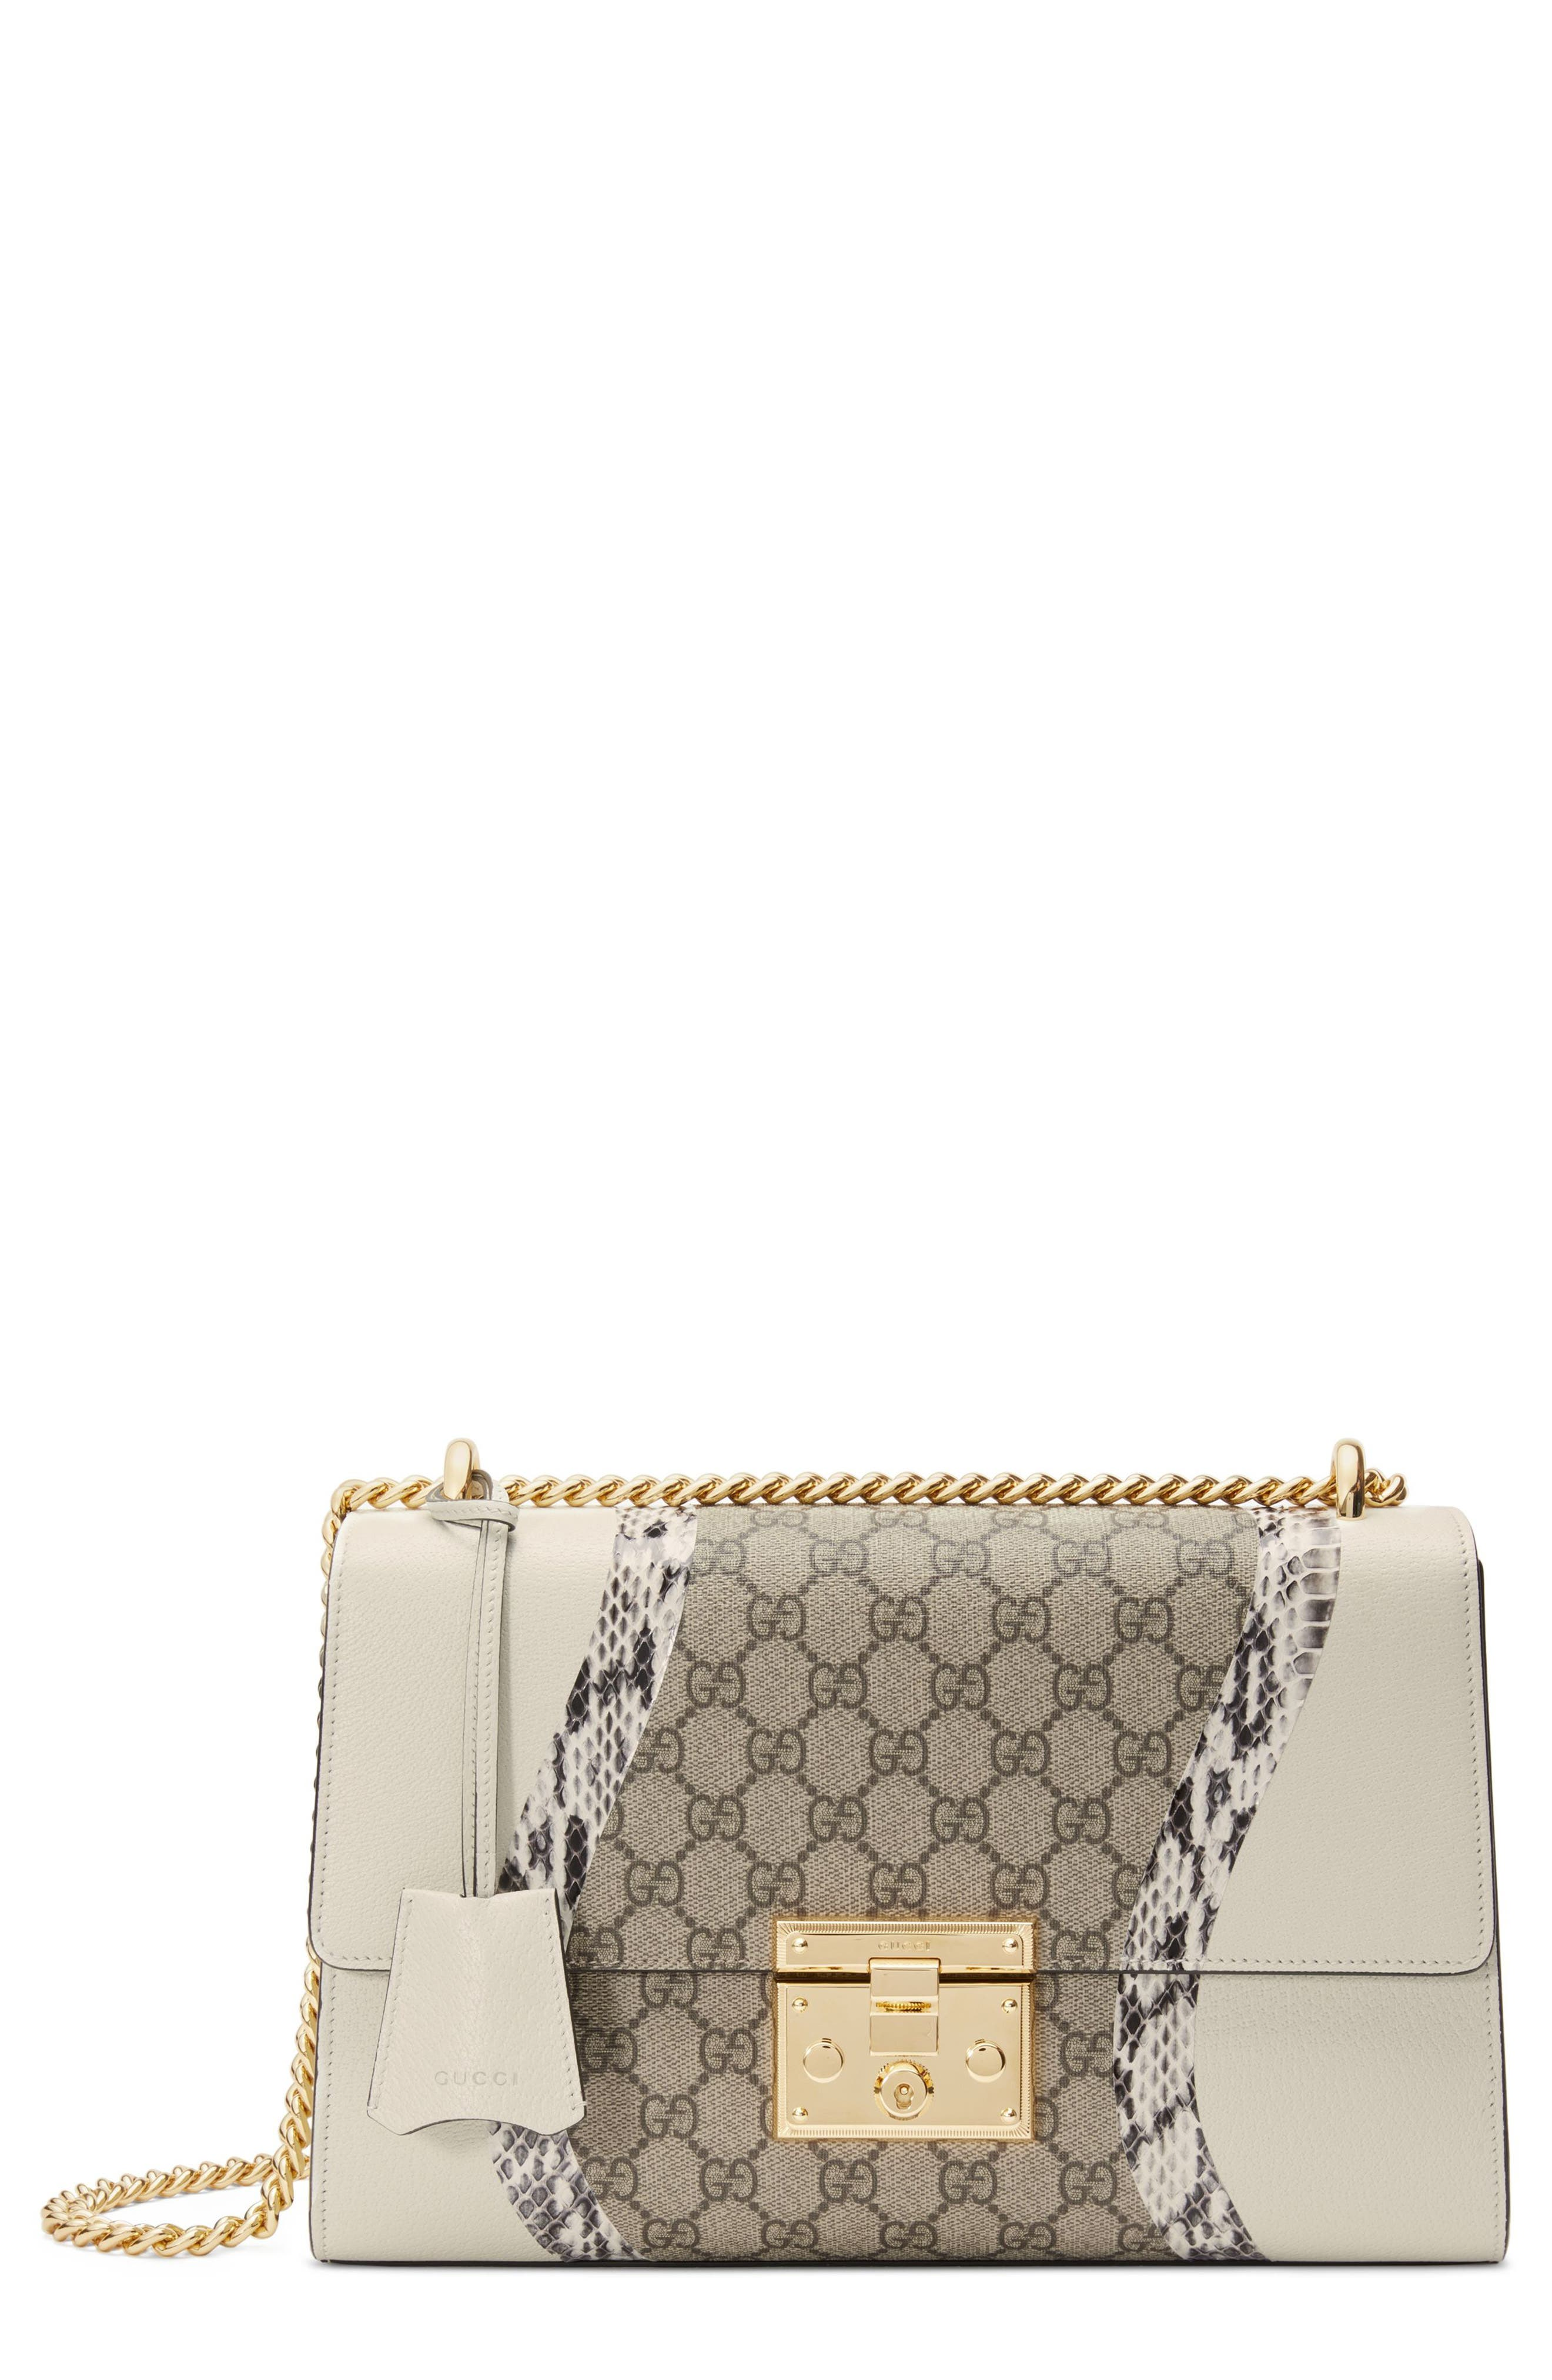 Medium Padlock GG Supreme Wave Shoulder Bag with Genuine Snakeskin Trim,                         Main,                         color, White/ Roccia/ Beige Ebony